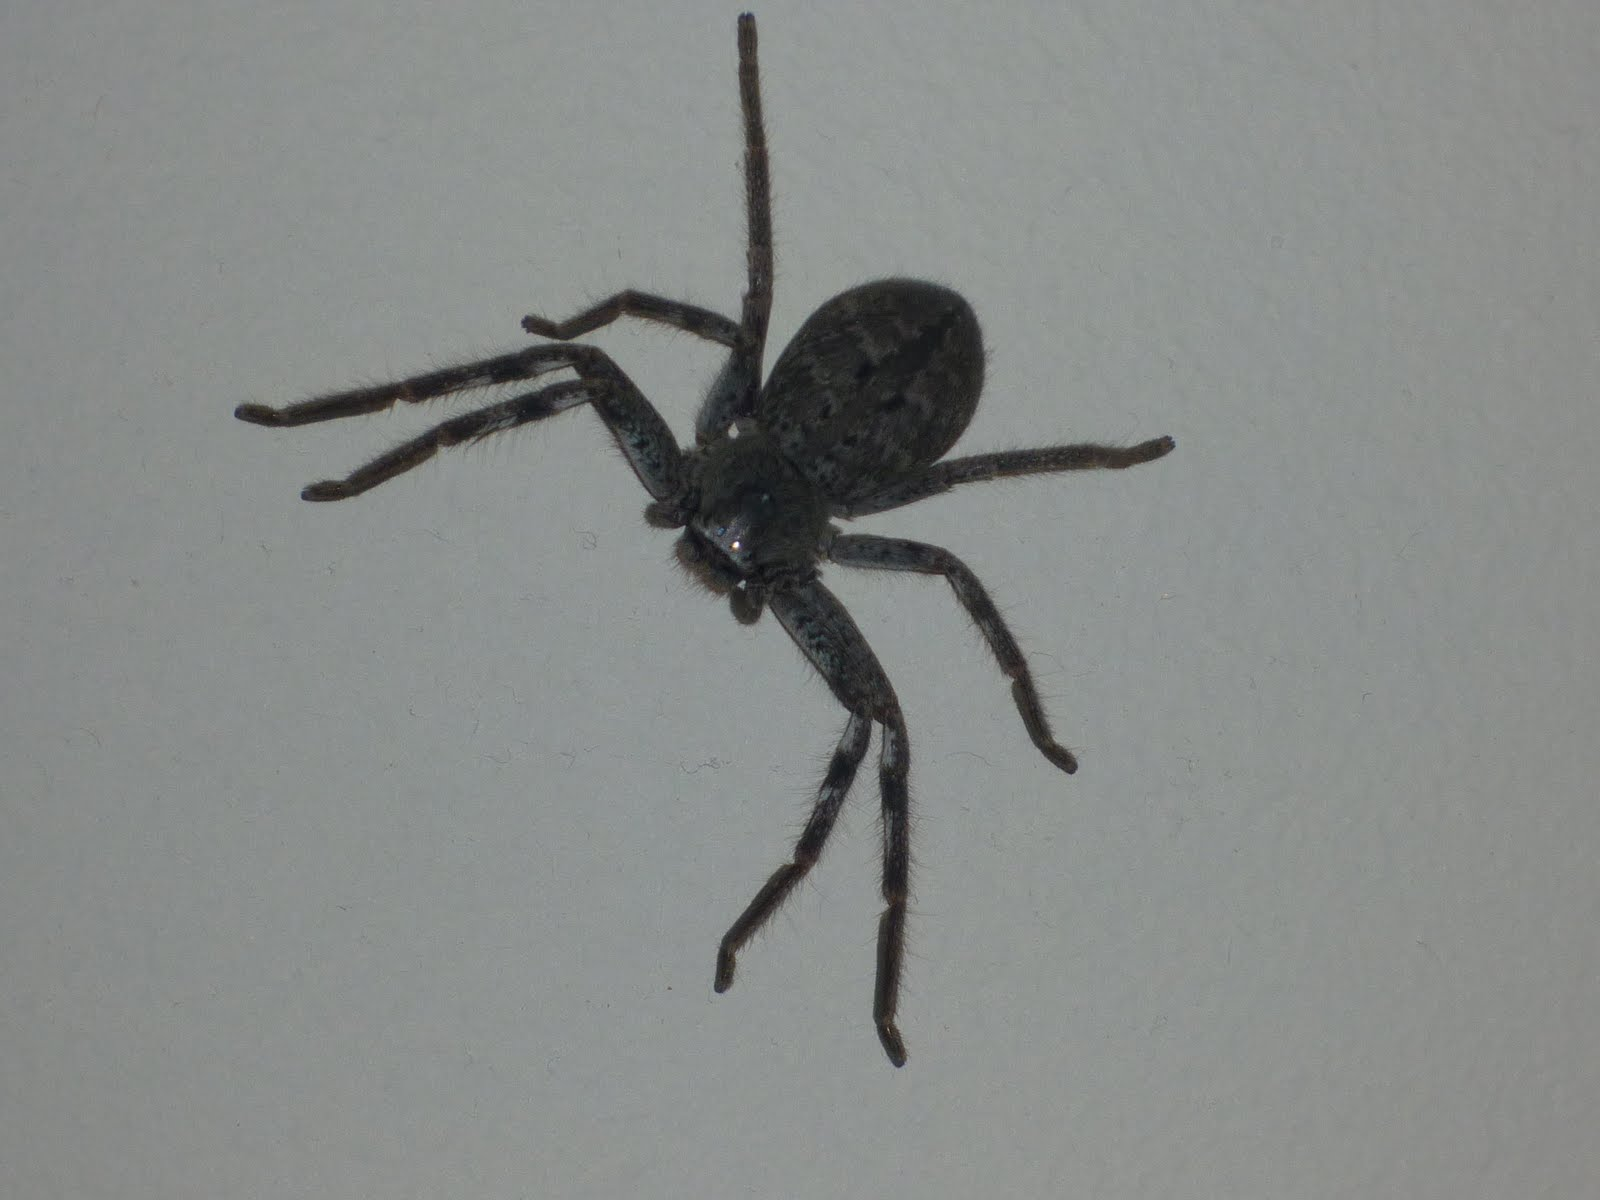 Small Black Fuzzy Spider http://slowgardener.blogspot.com/2010/12/tool-for-relocating-spiders.html